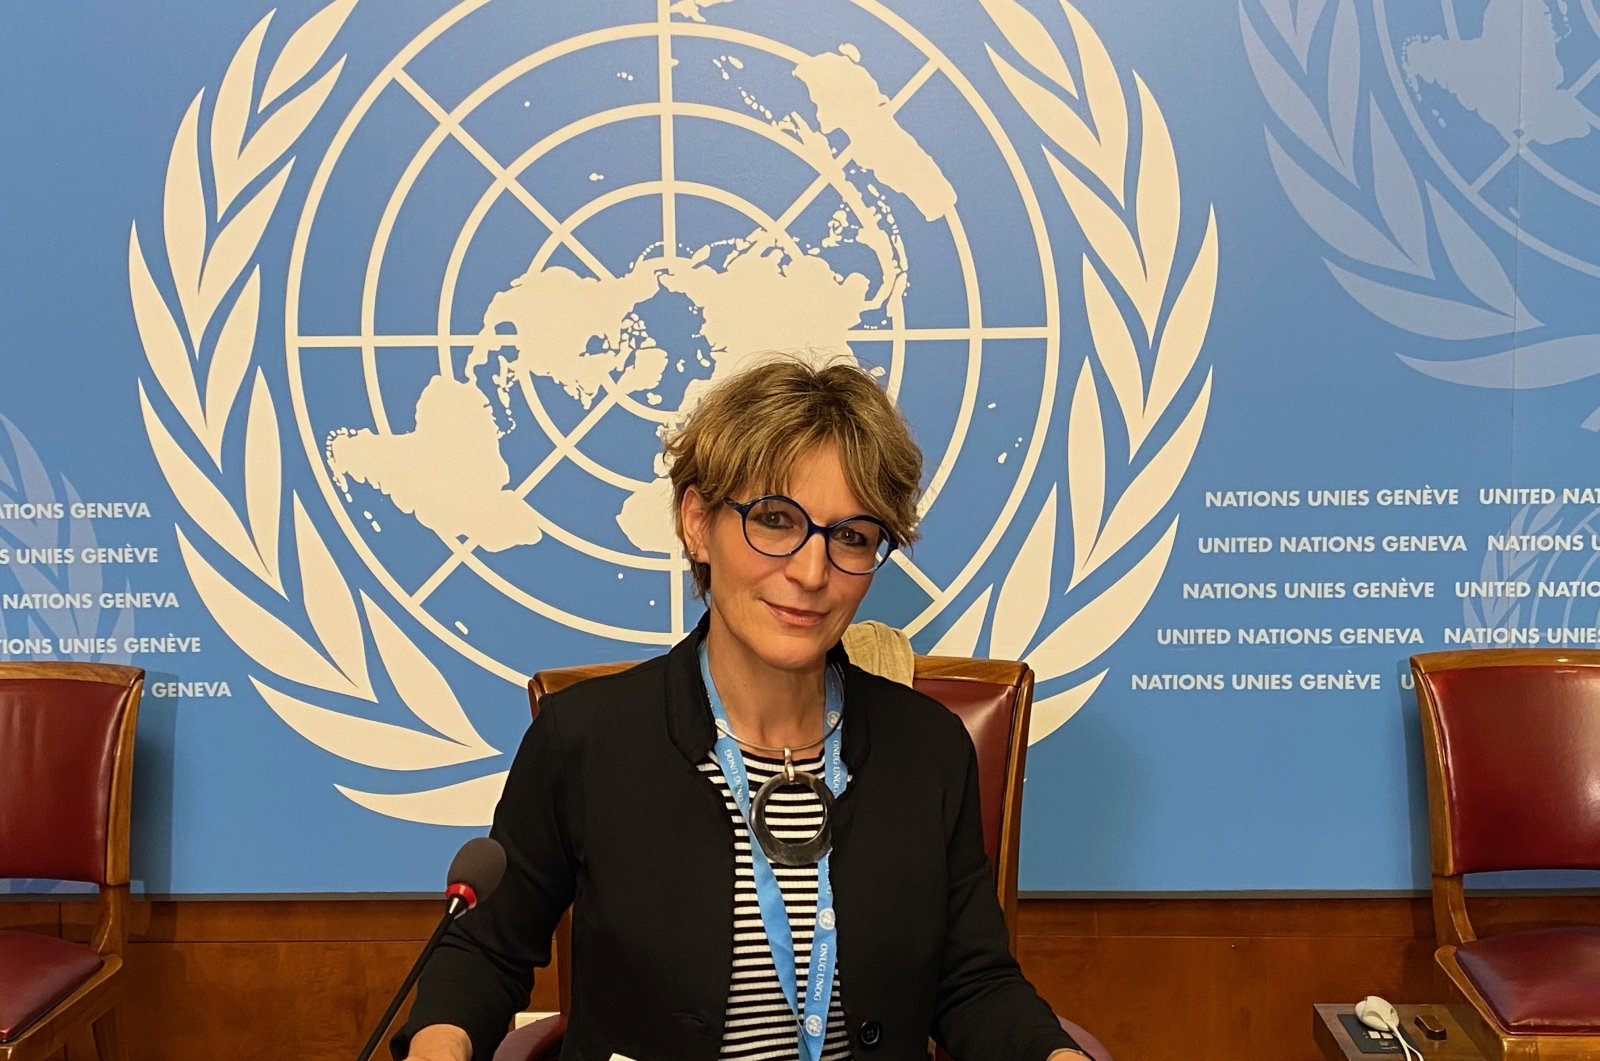 U.N. human rights investigator Agnes Callamard after speaking to journalists at the U.N. in Geneva, July 9, 2020. (AA)